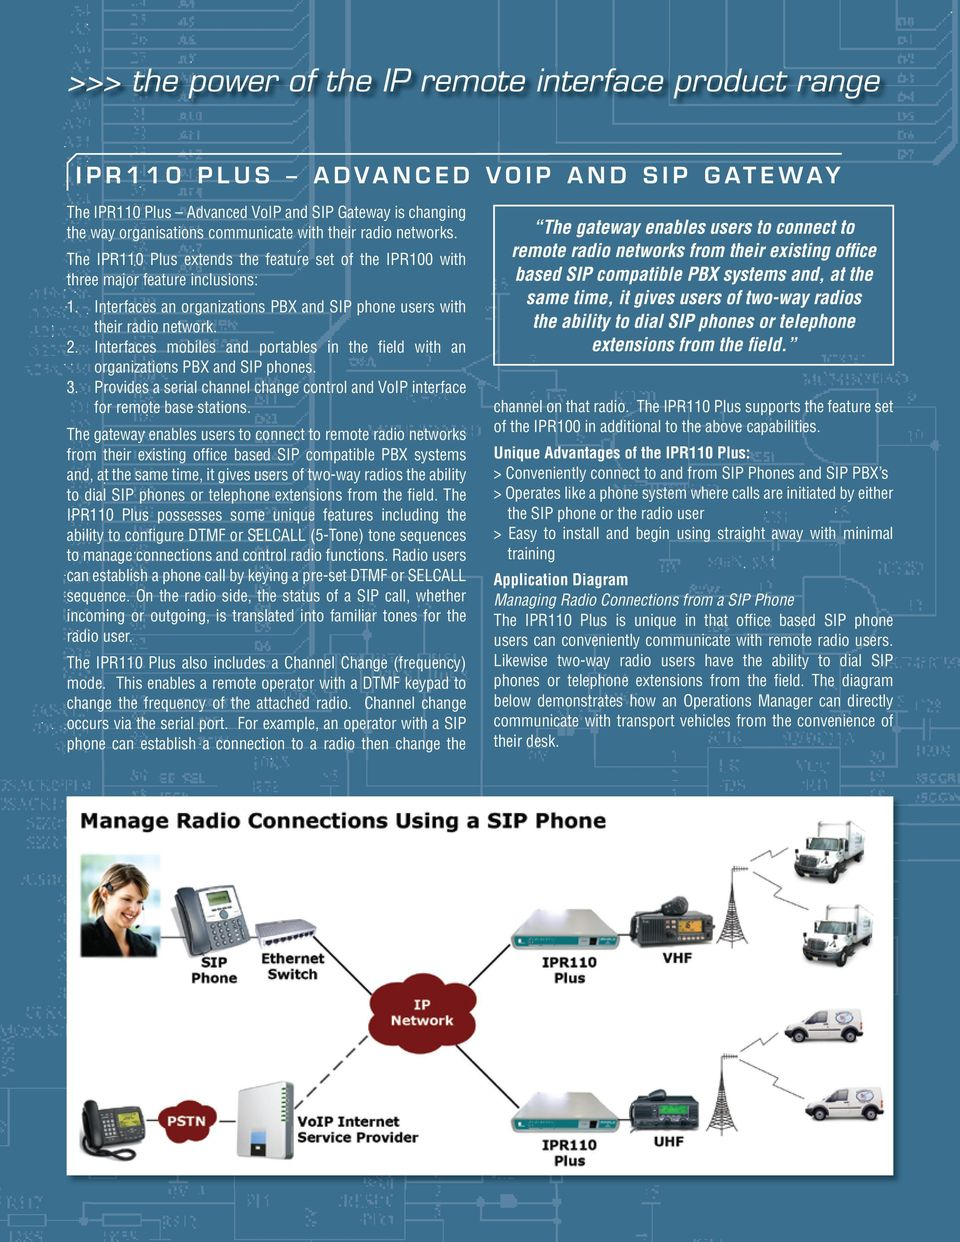 Interfaces mobiles and portables in the fi eld with an organizations PBX and SIP phones. 3. Provides a serial channel change control and VoIP interface for remote base stations.